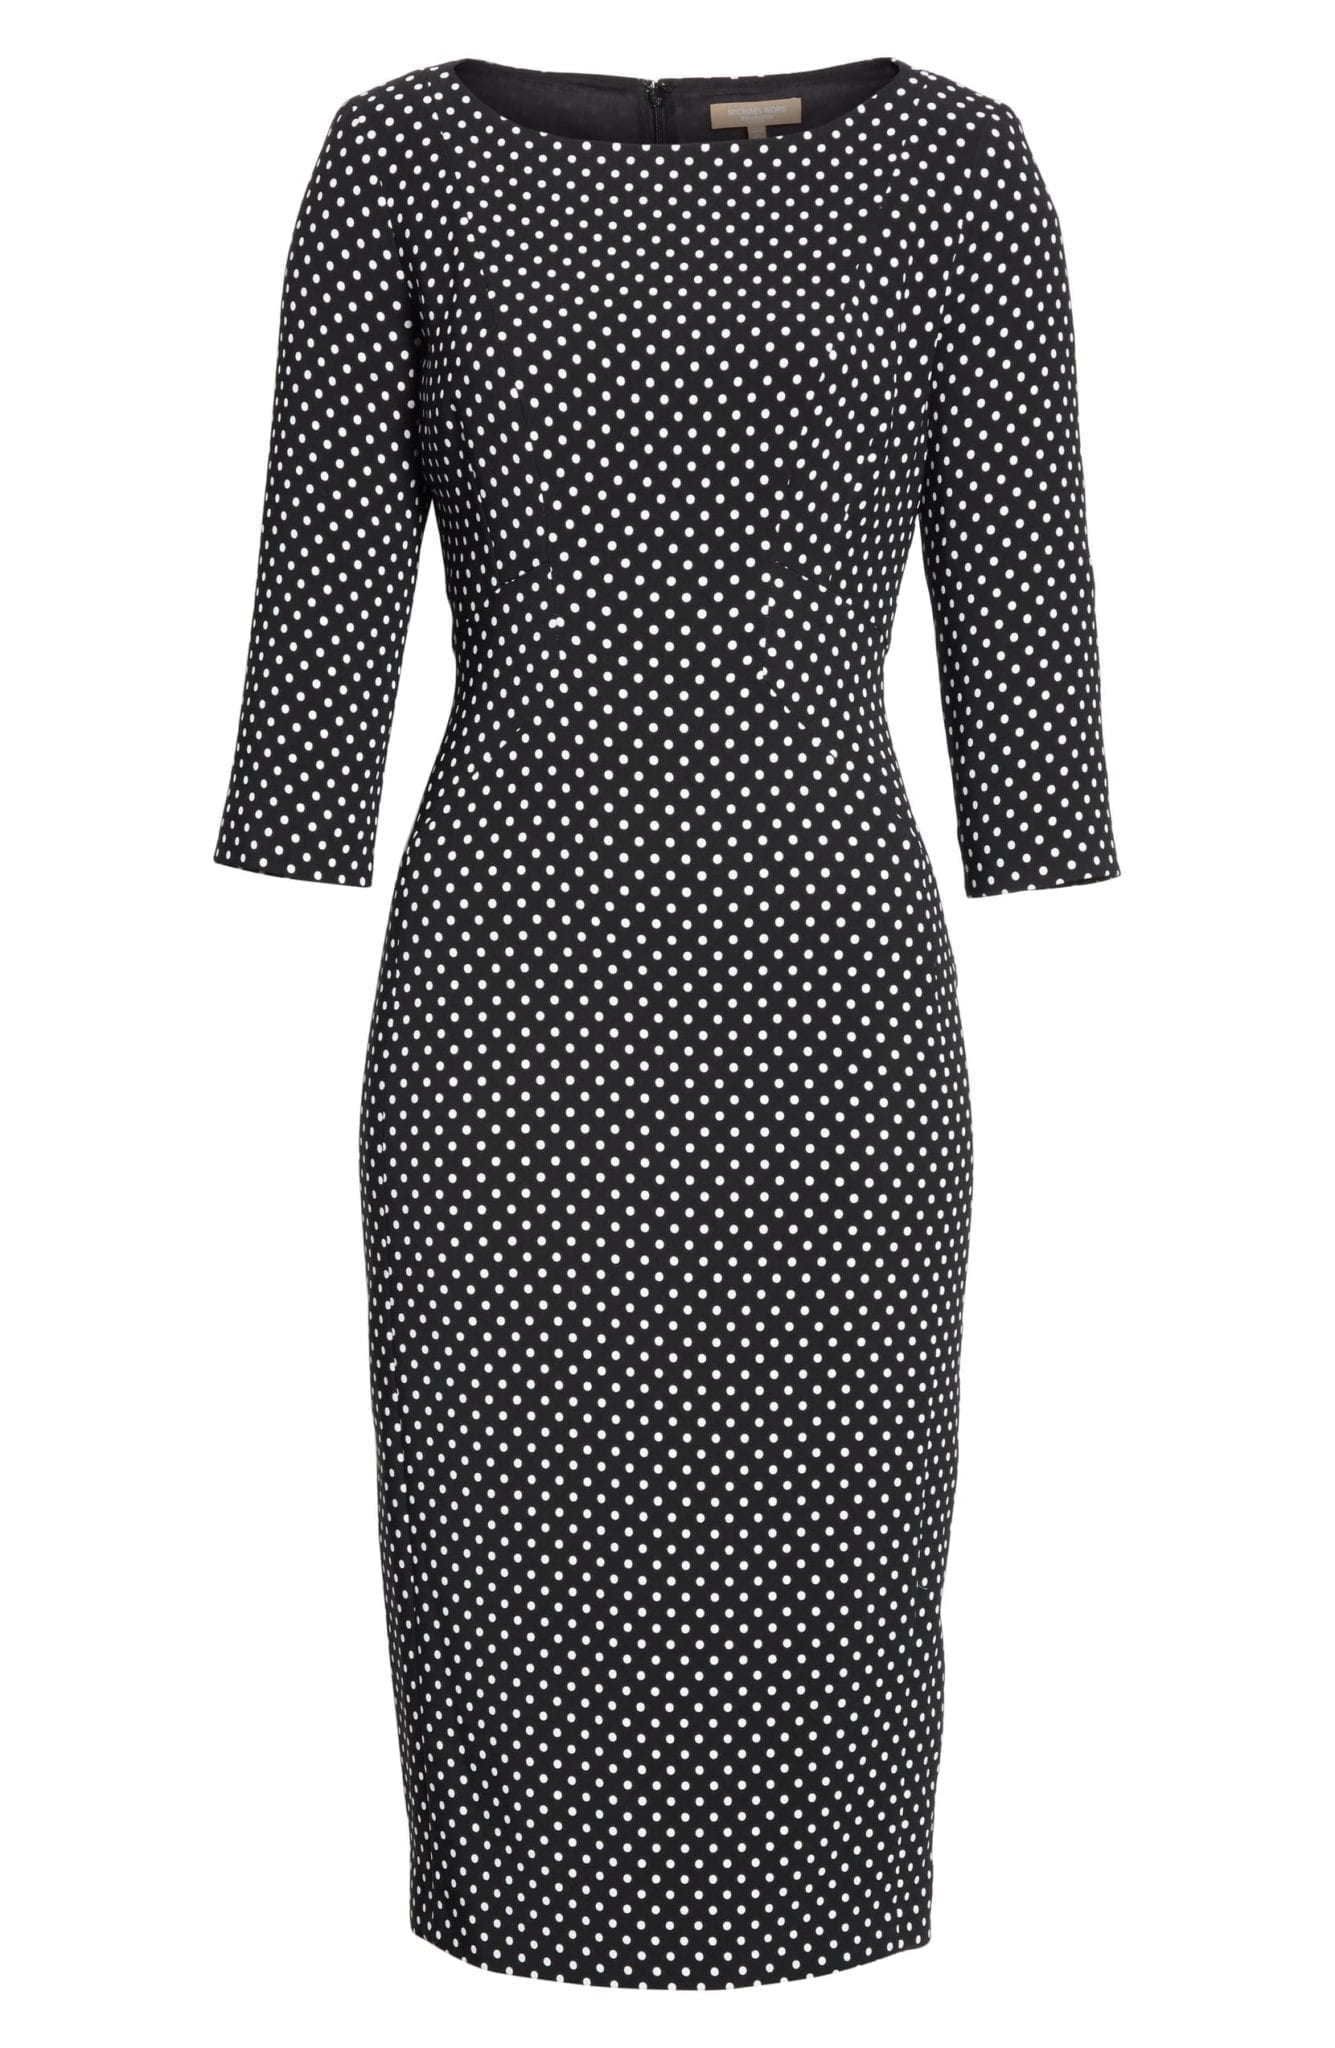 MICHAEL KORS Polka Dot Sheath Black / Optic White Dress